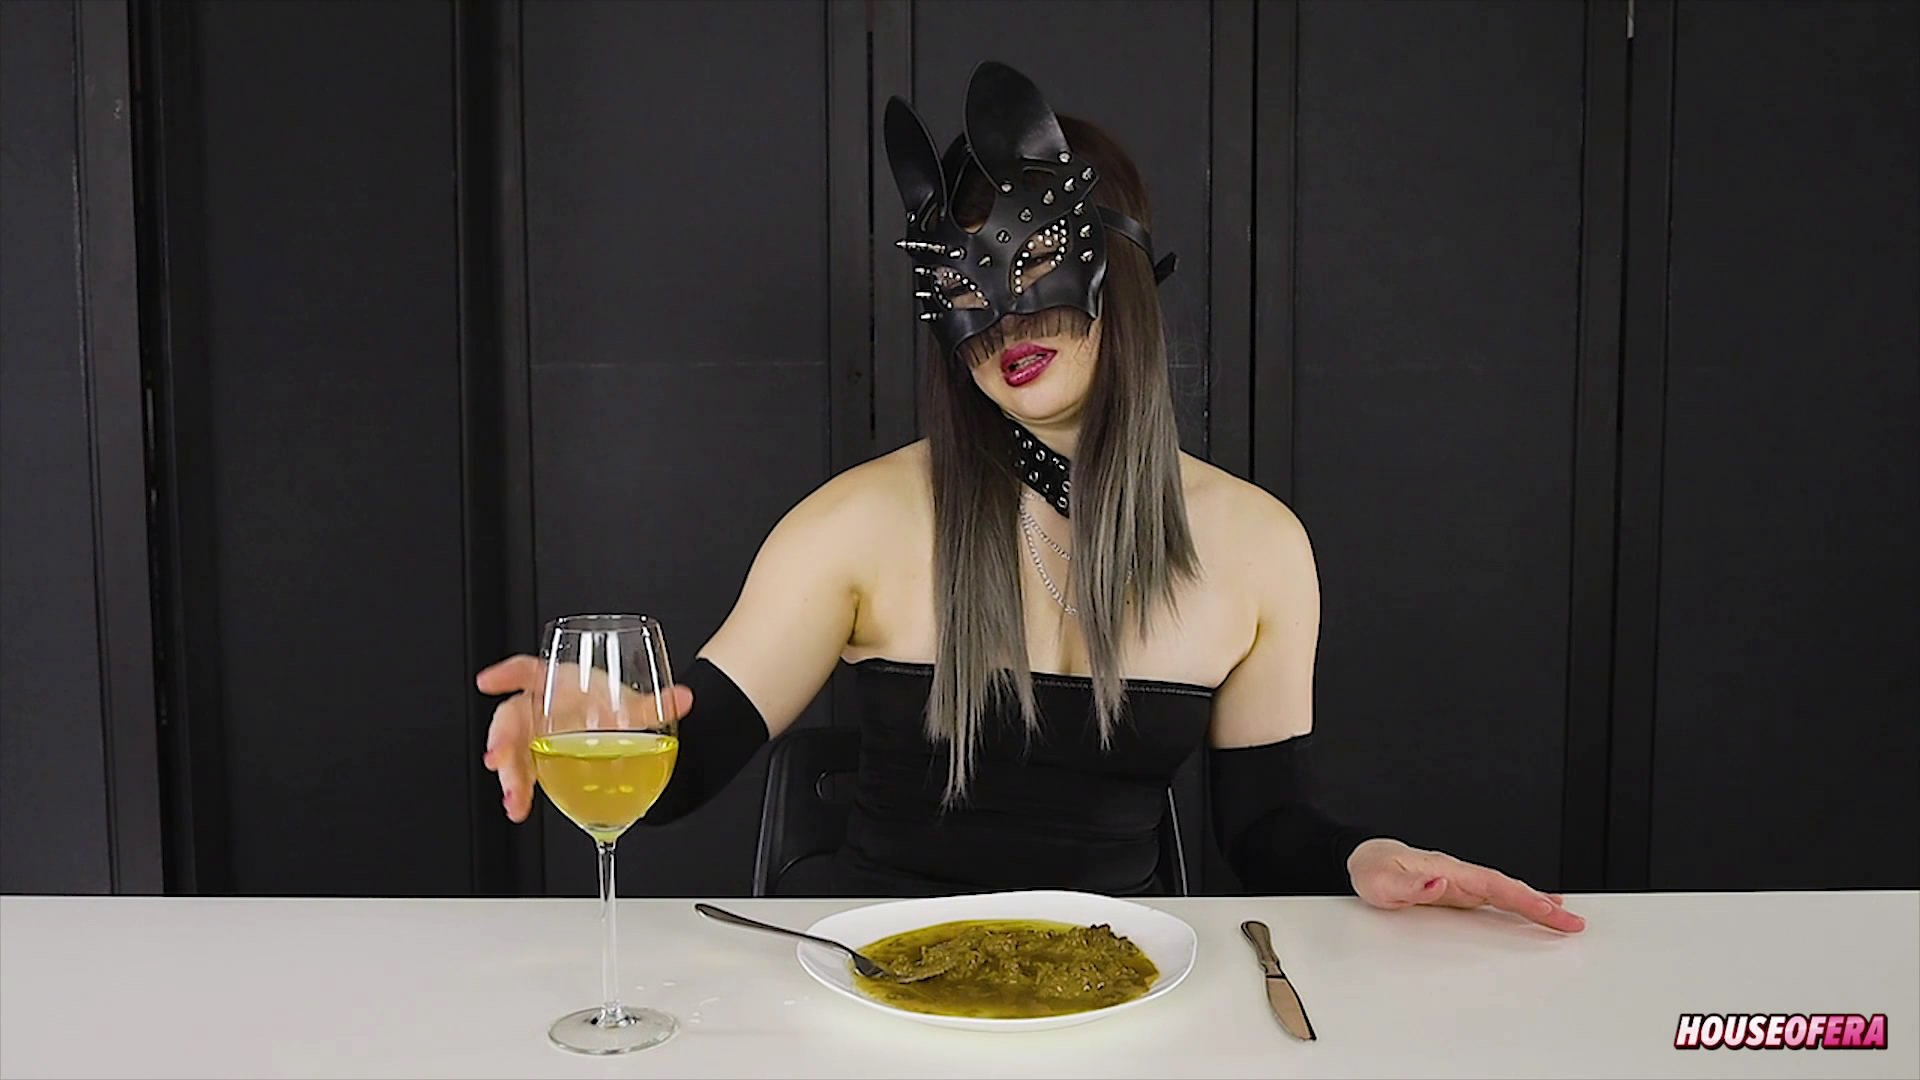 Scat Pee Spitting – Dinner for You starring in video HouseofEra (Release date: May 08, 2021)